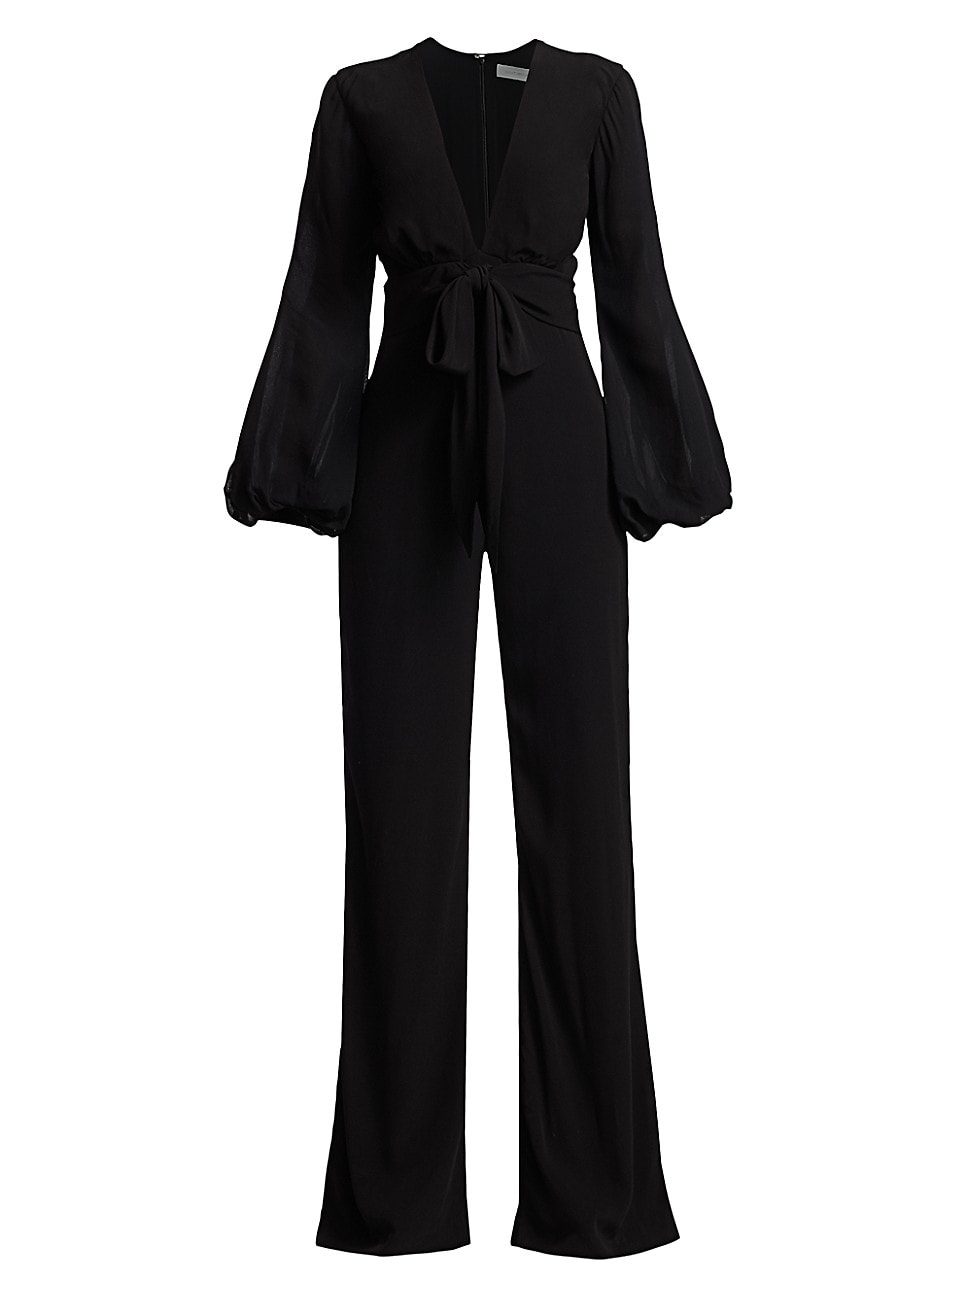 Silvia Tcherassi WOMEN'S FAITH BELTED PUFF-SLEEVE JUMPSUIT